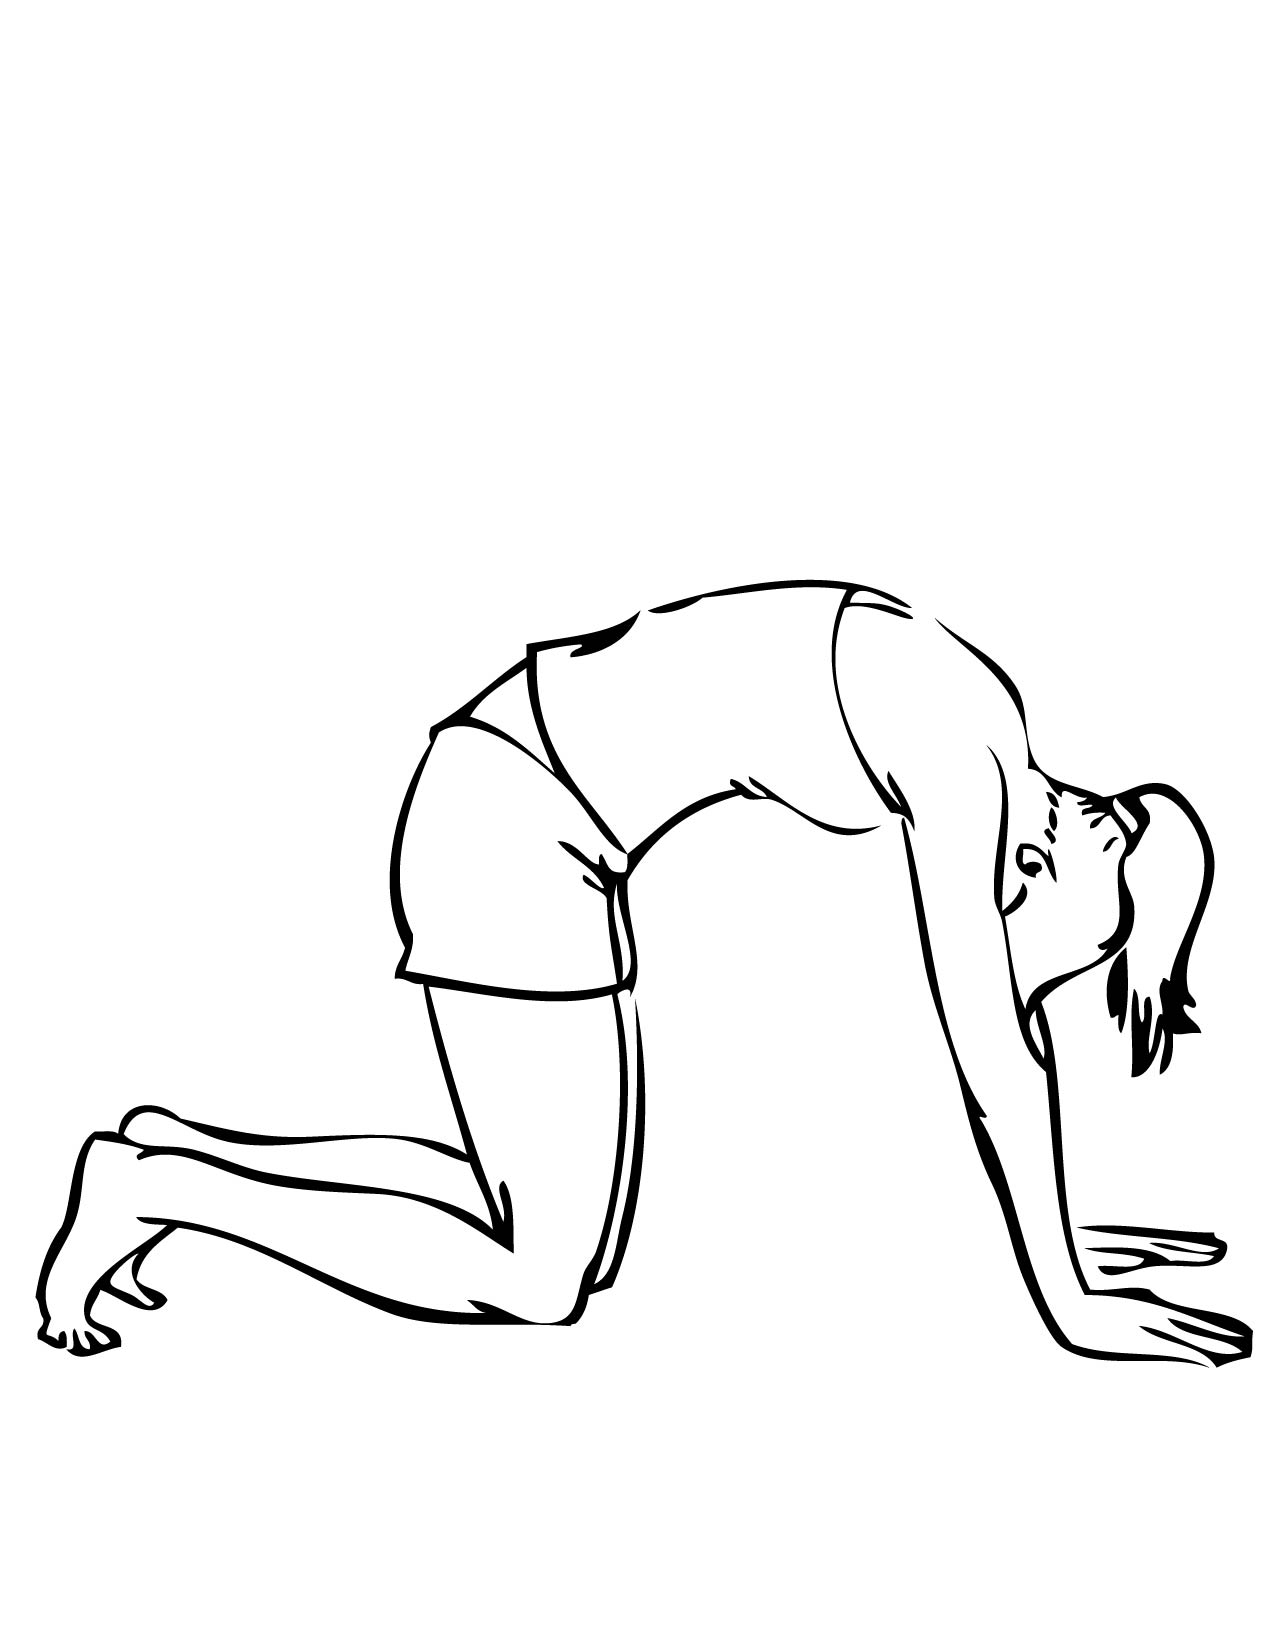 Yoga Poses Abc Coloring Sheets